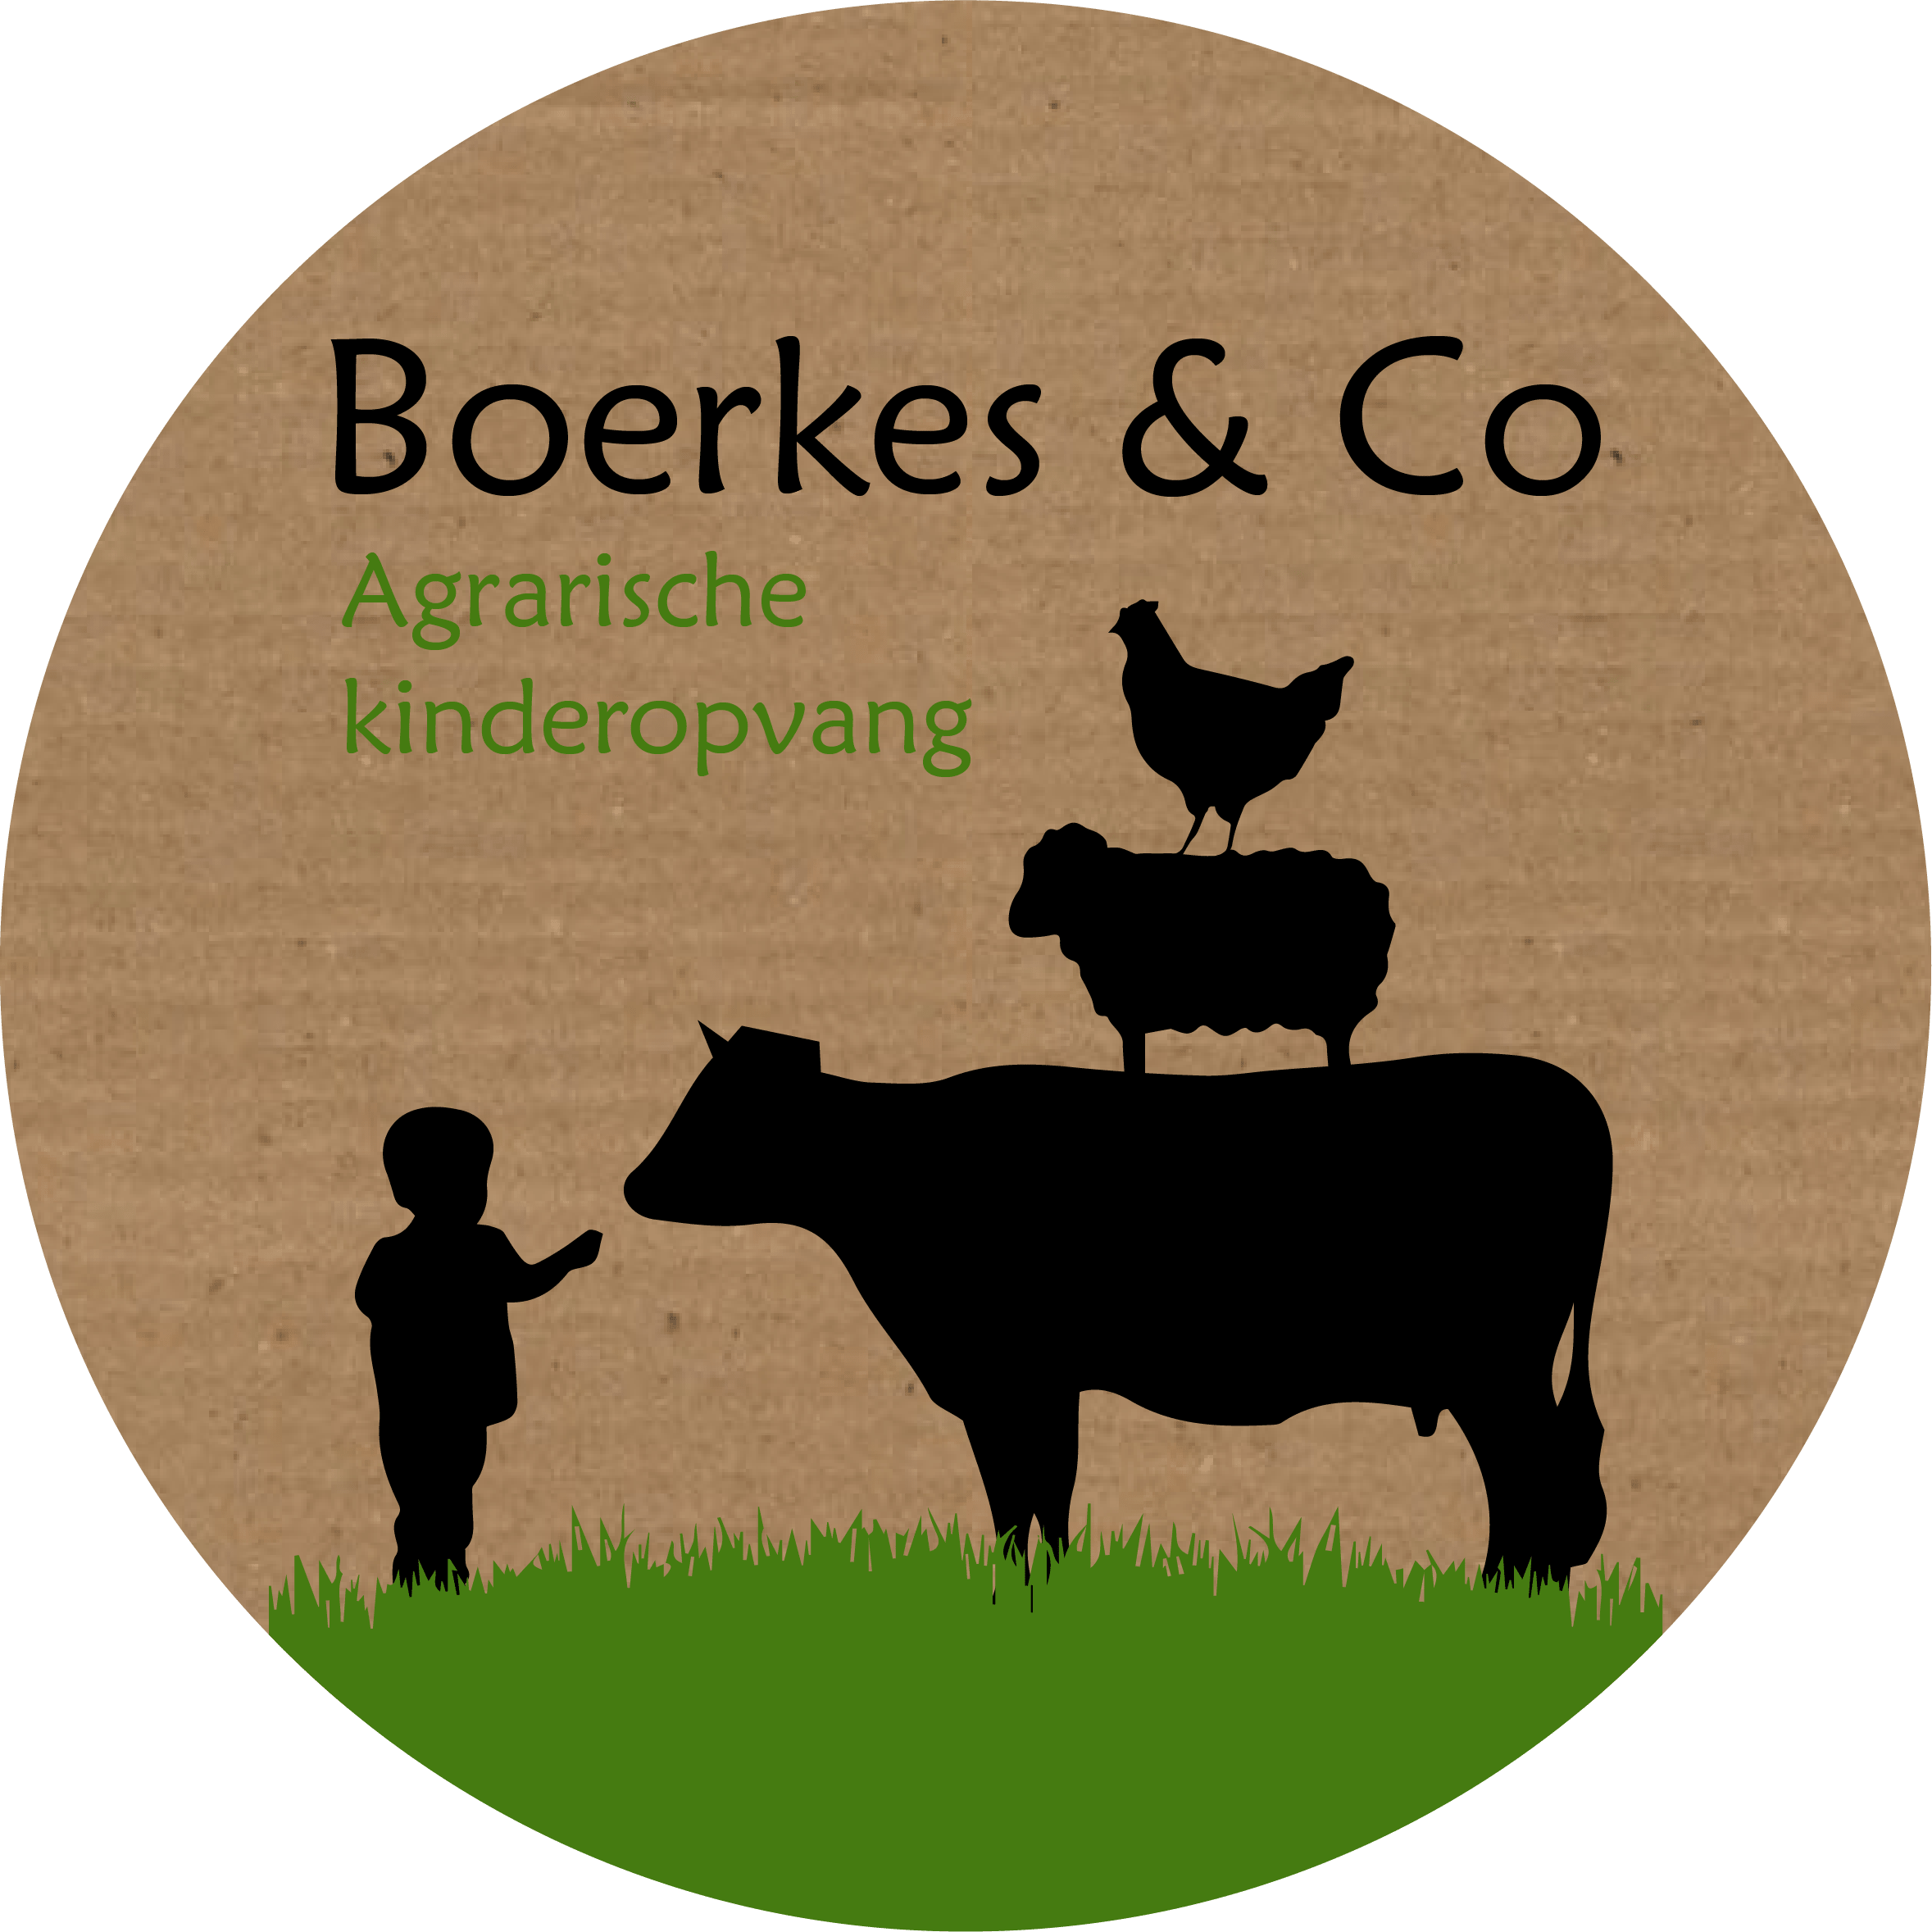 Boerkes & Co